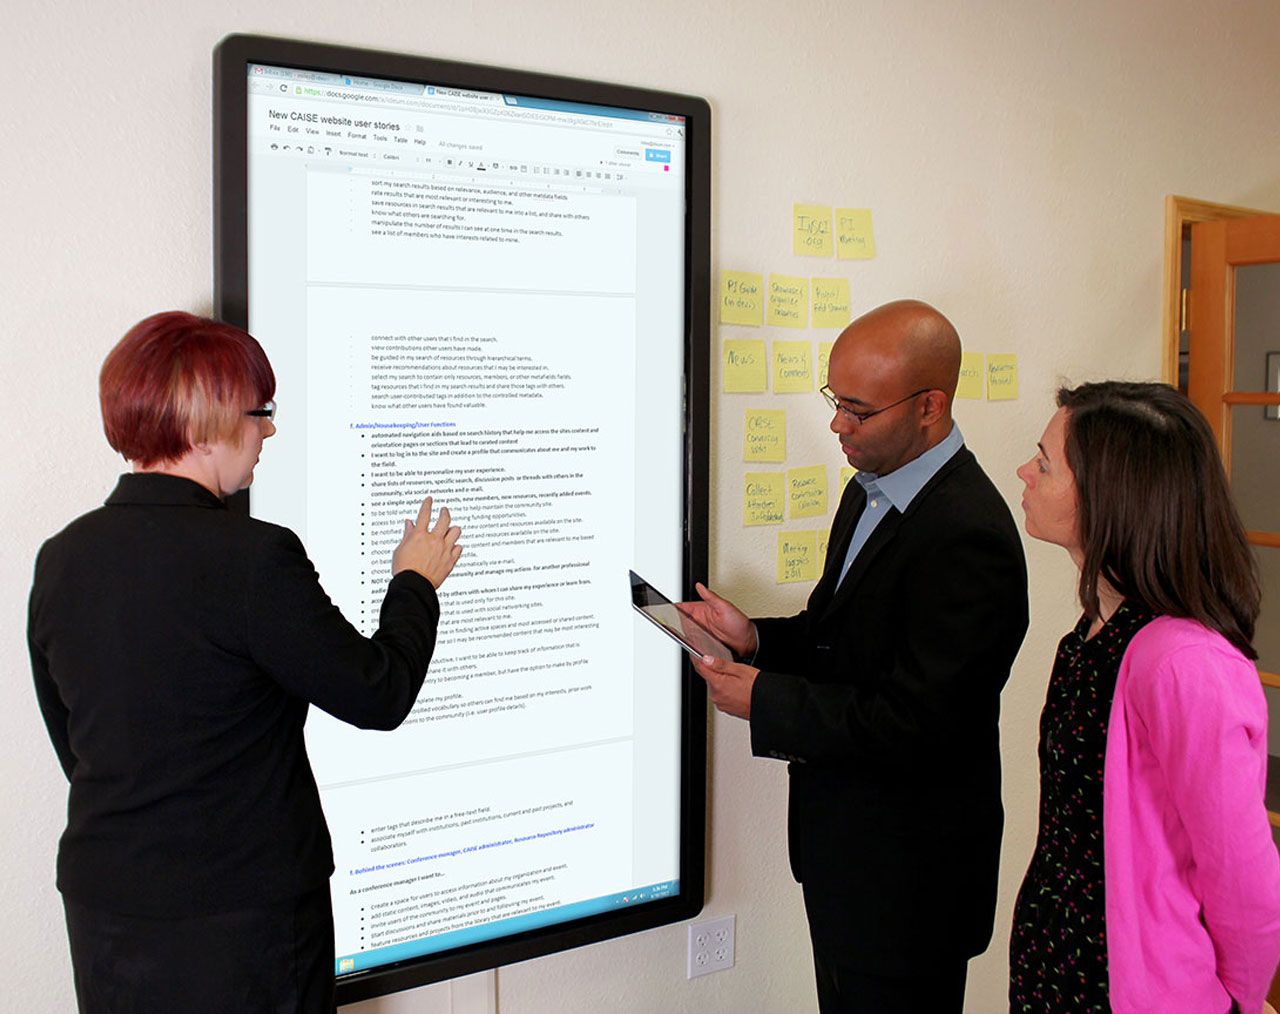 Image for the post: 'New Presenter Model – Huge Multitouch Wall'